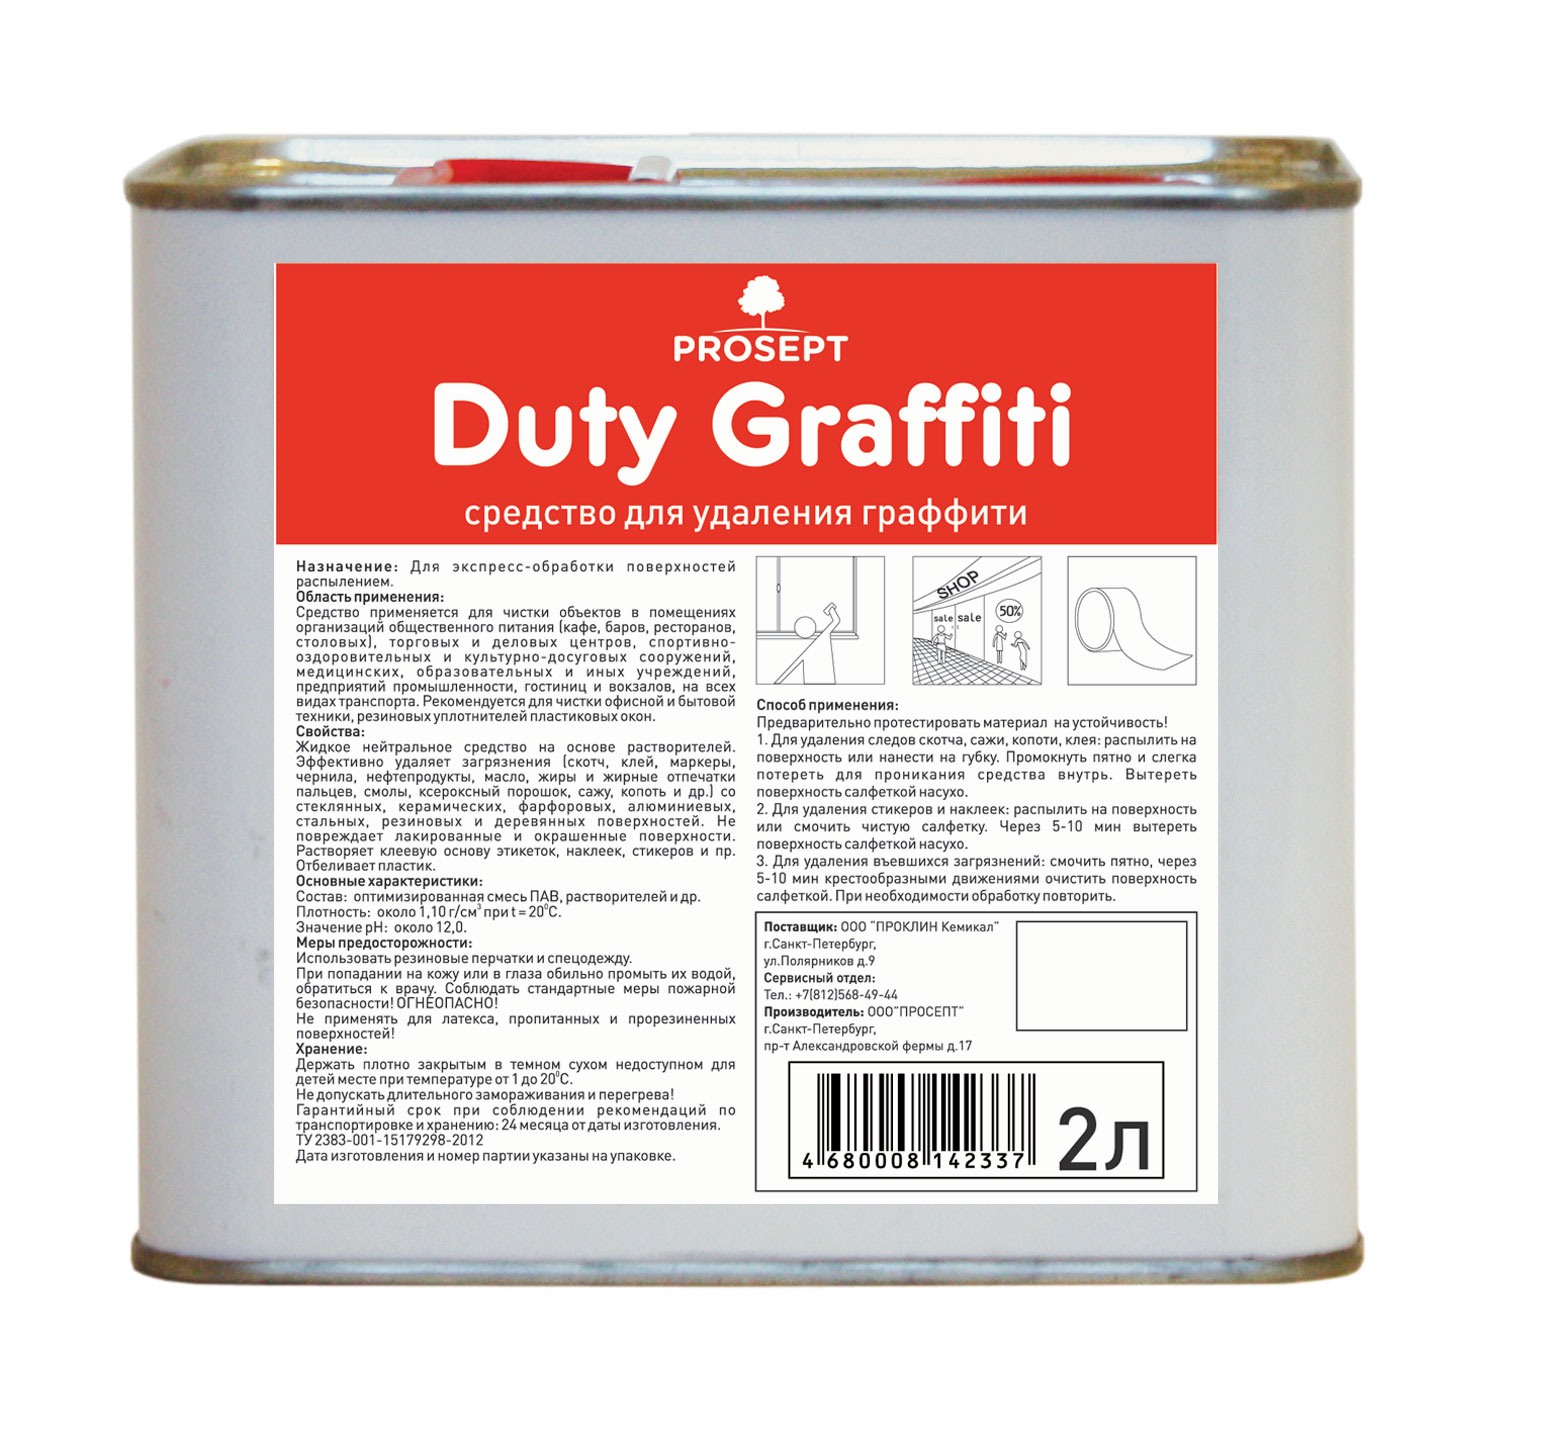 Duty Graffiti  2 л. Средство для удаления граффити  Prosept